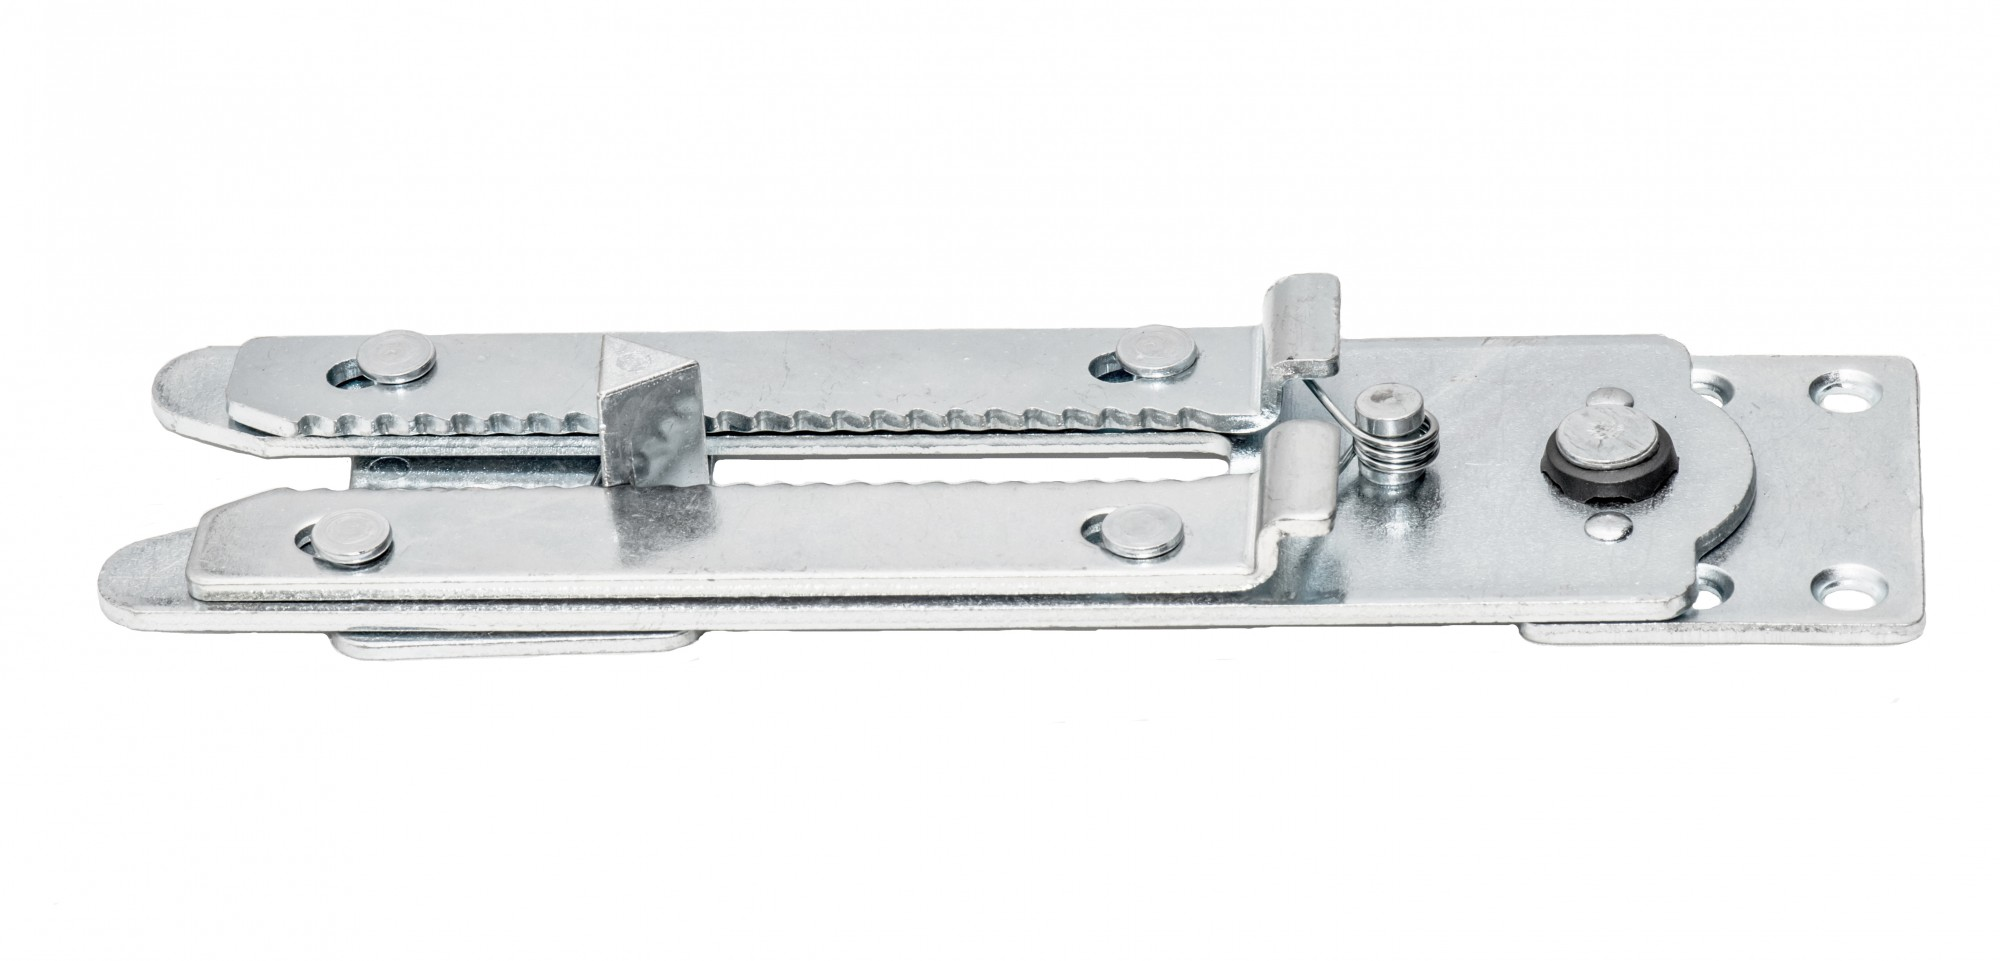 EXTRA LONG SOFA CONNECTOR GFCHF-03N